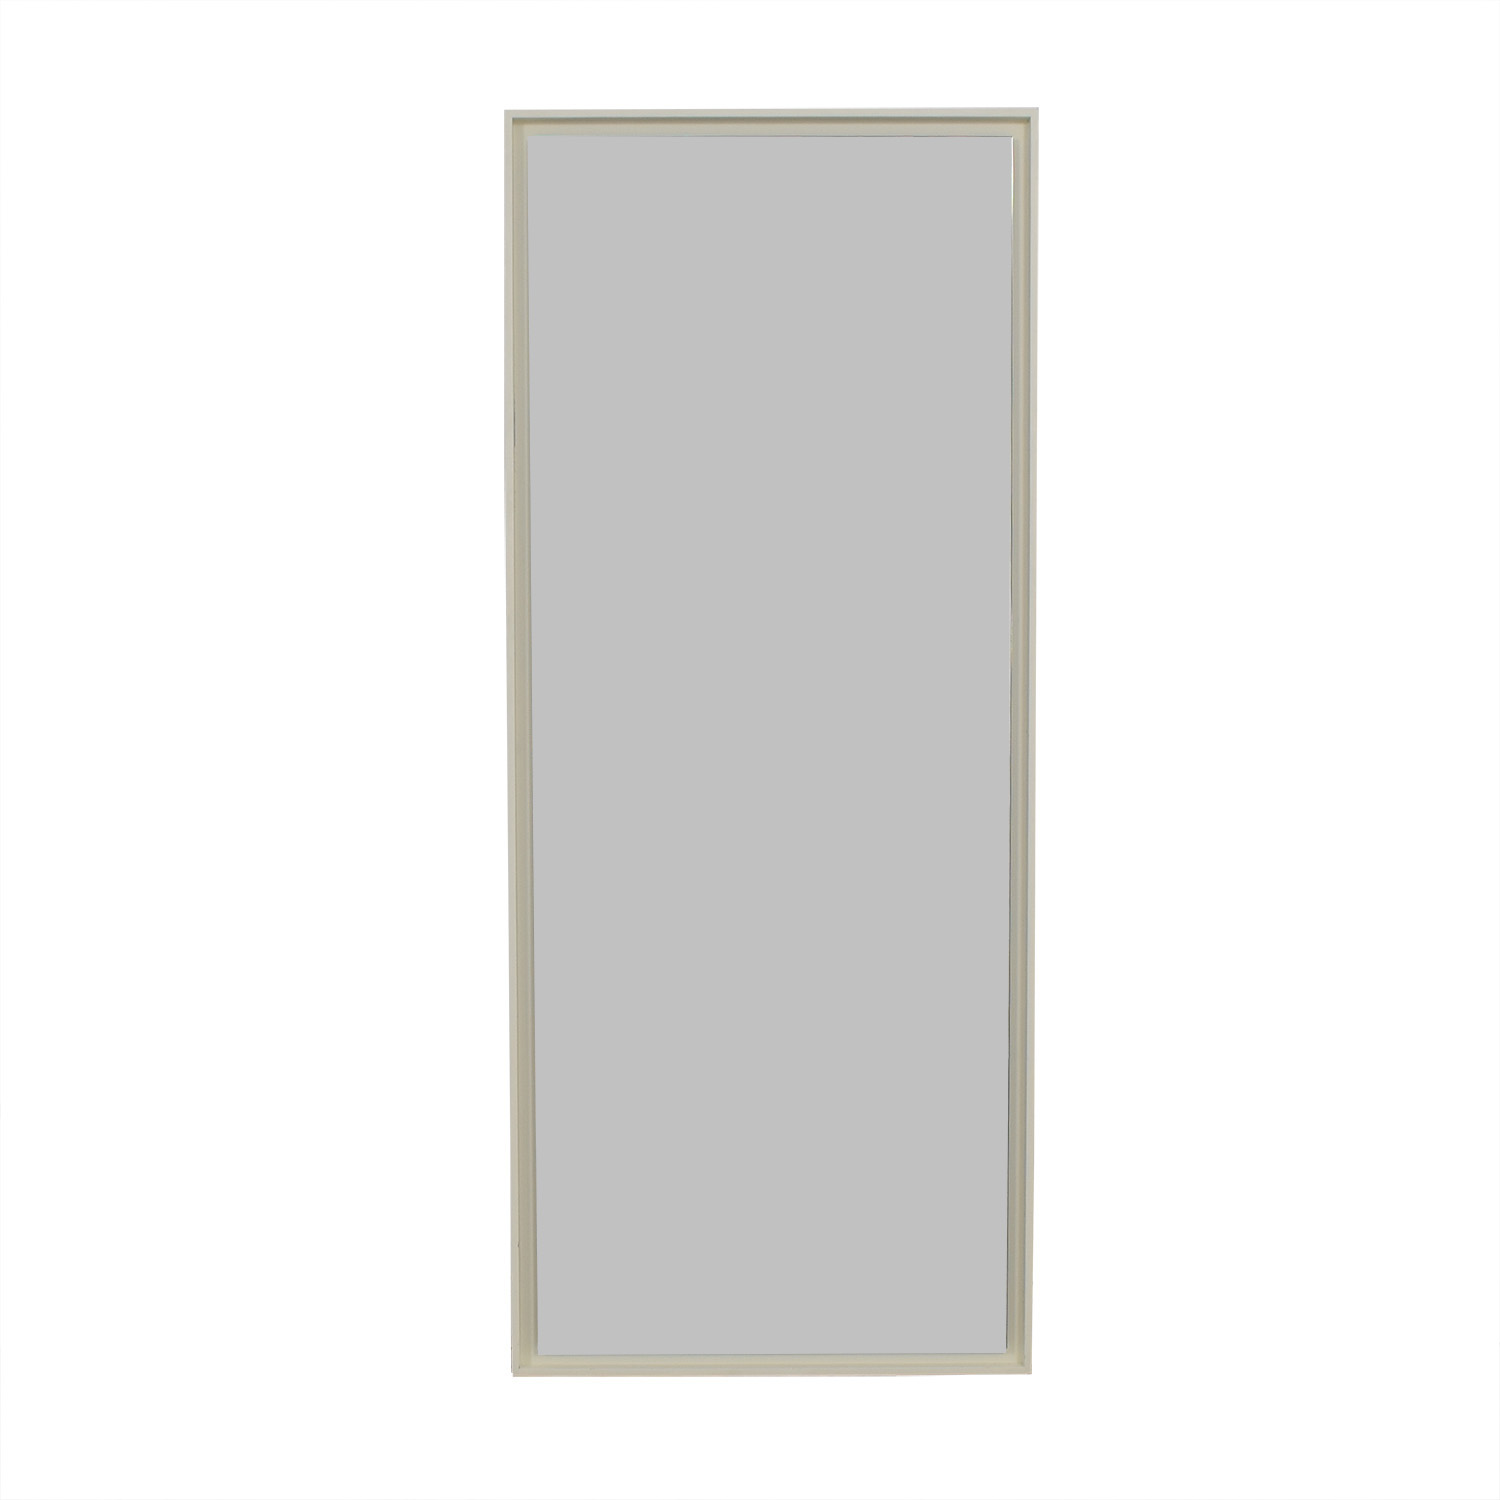 West Elm White Floating Mirror sale